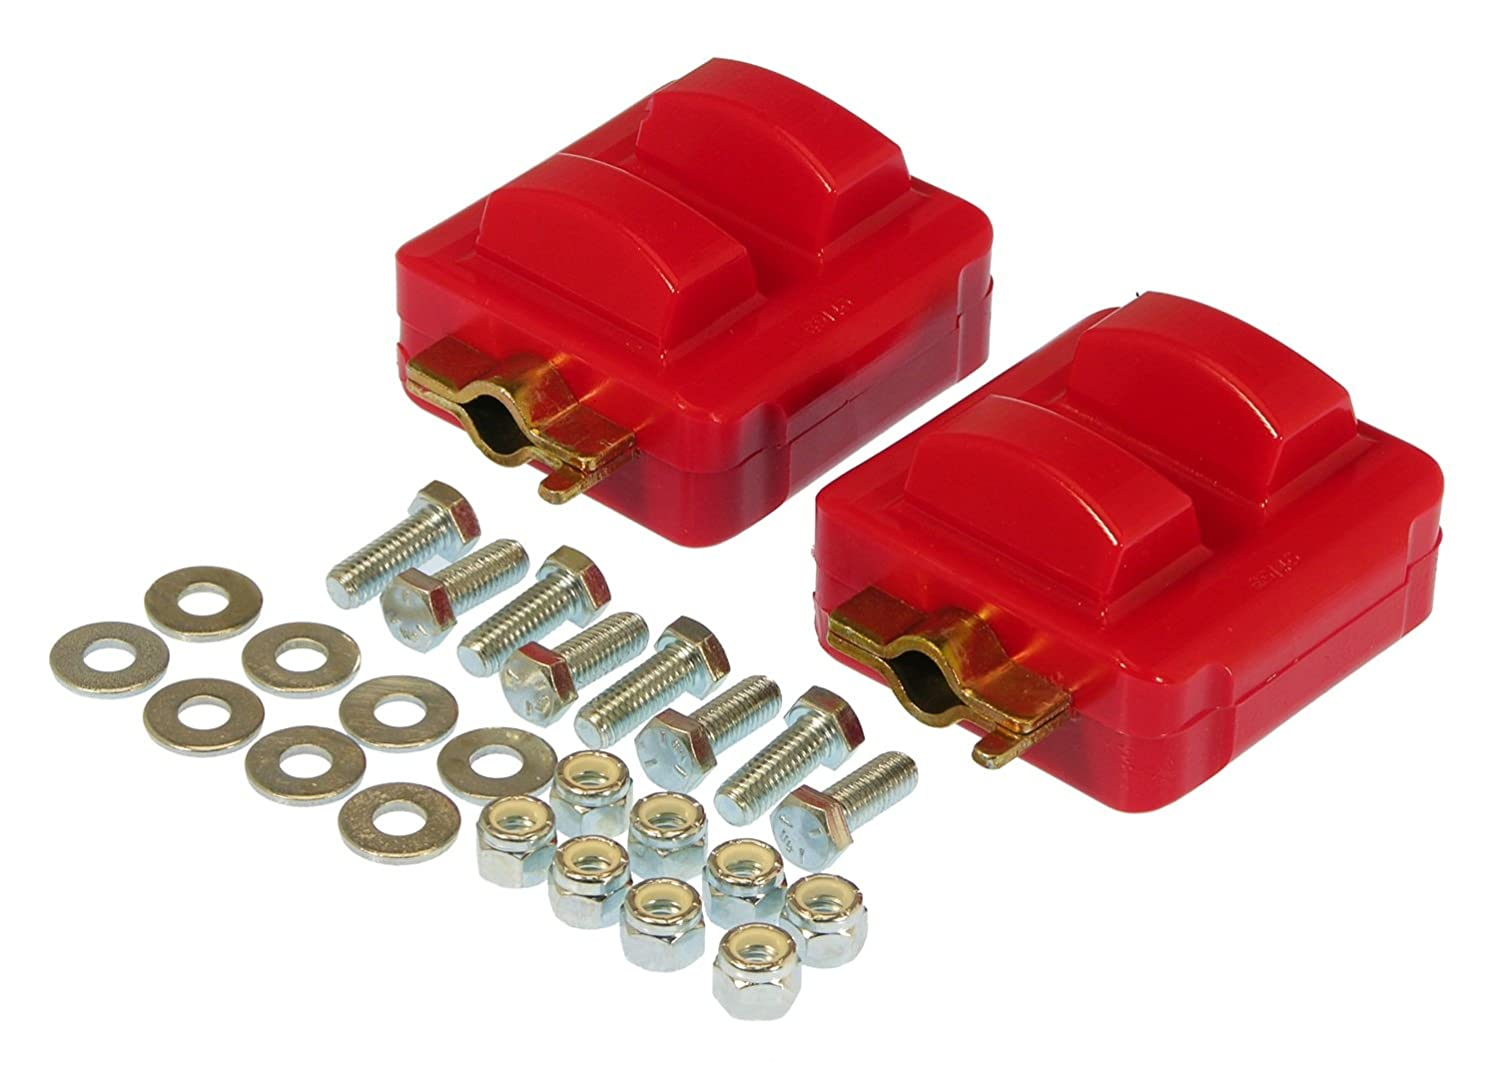 Prothane 7-512 Red Motor Mount Kit